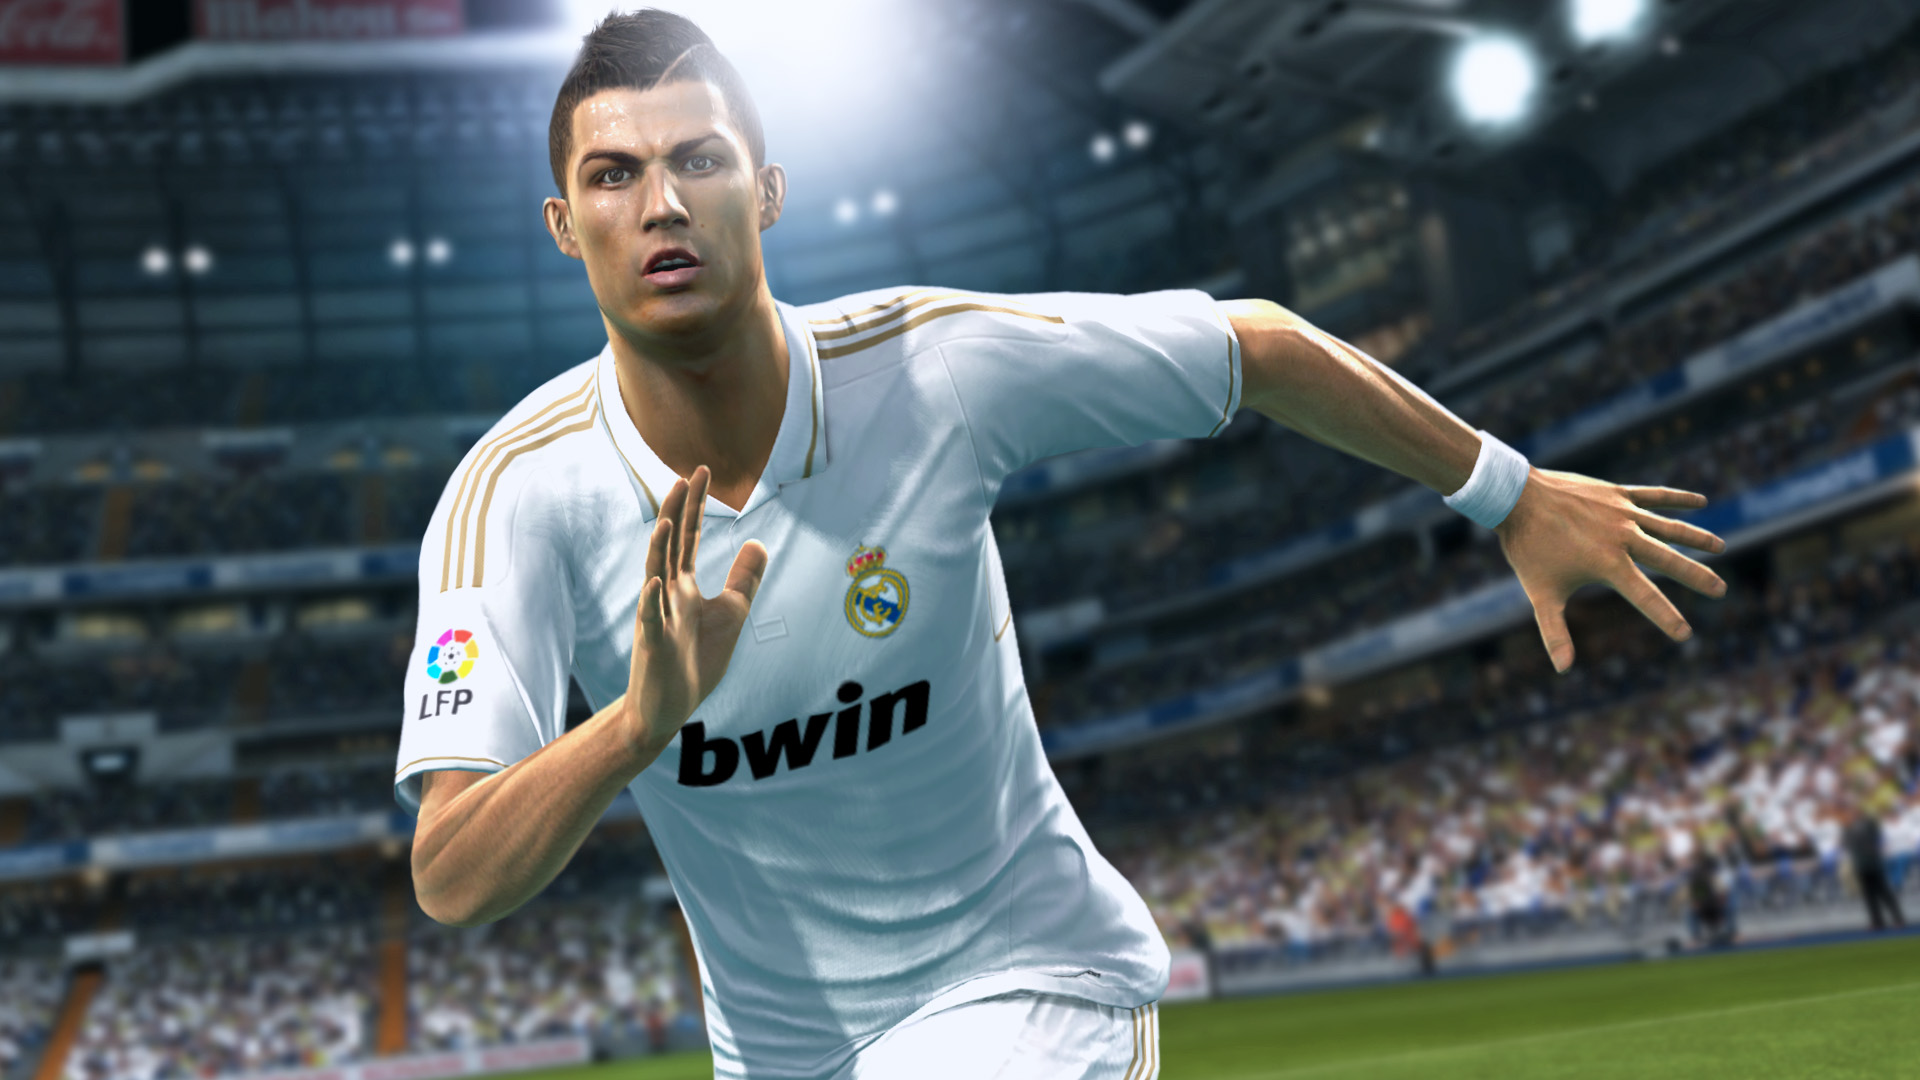 Konami announces Pro Evolution Soccer 2013